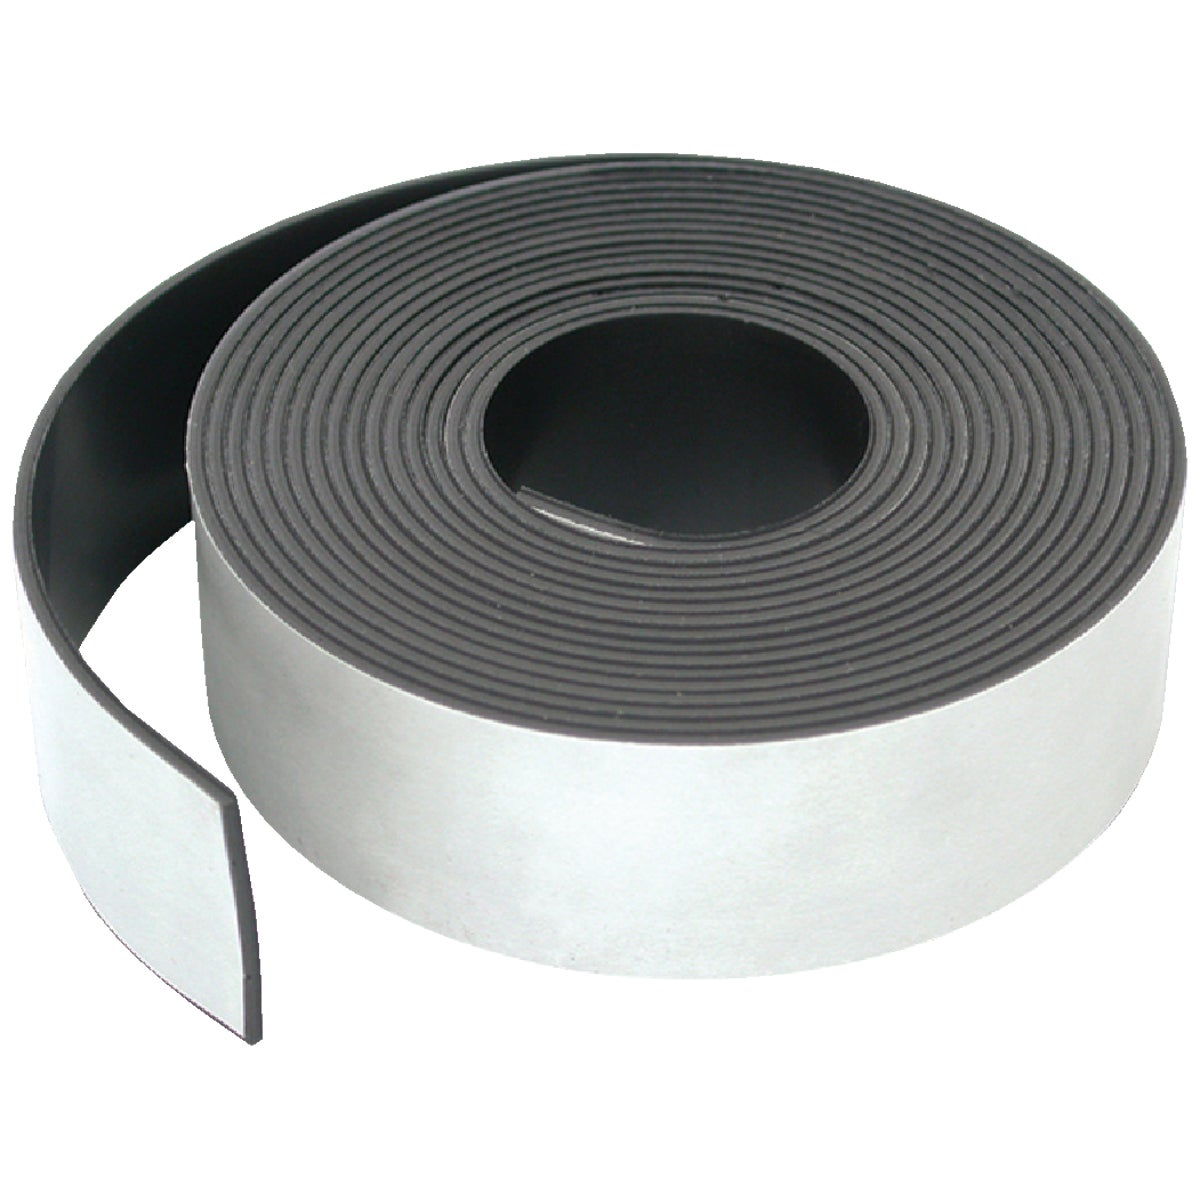 "1""X10' MAGNETIC TAPE - 07019 by Master Magnetics"